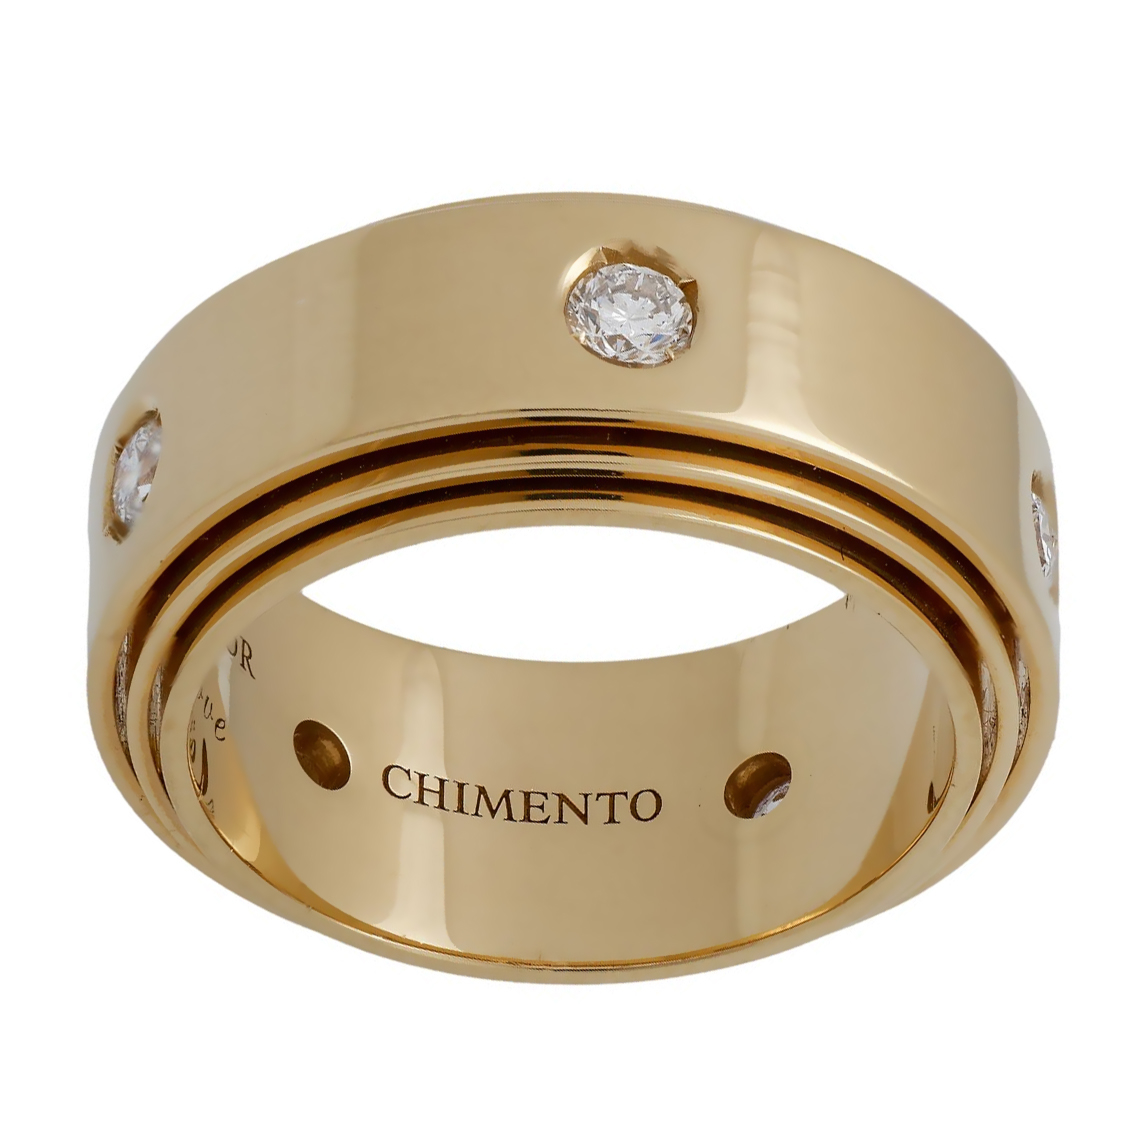 Chimento Diamond Yellow Gold Band Ring - Chimento Jewelry